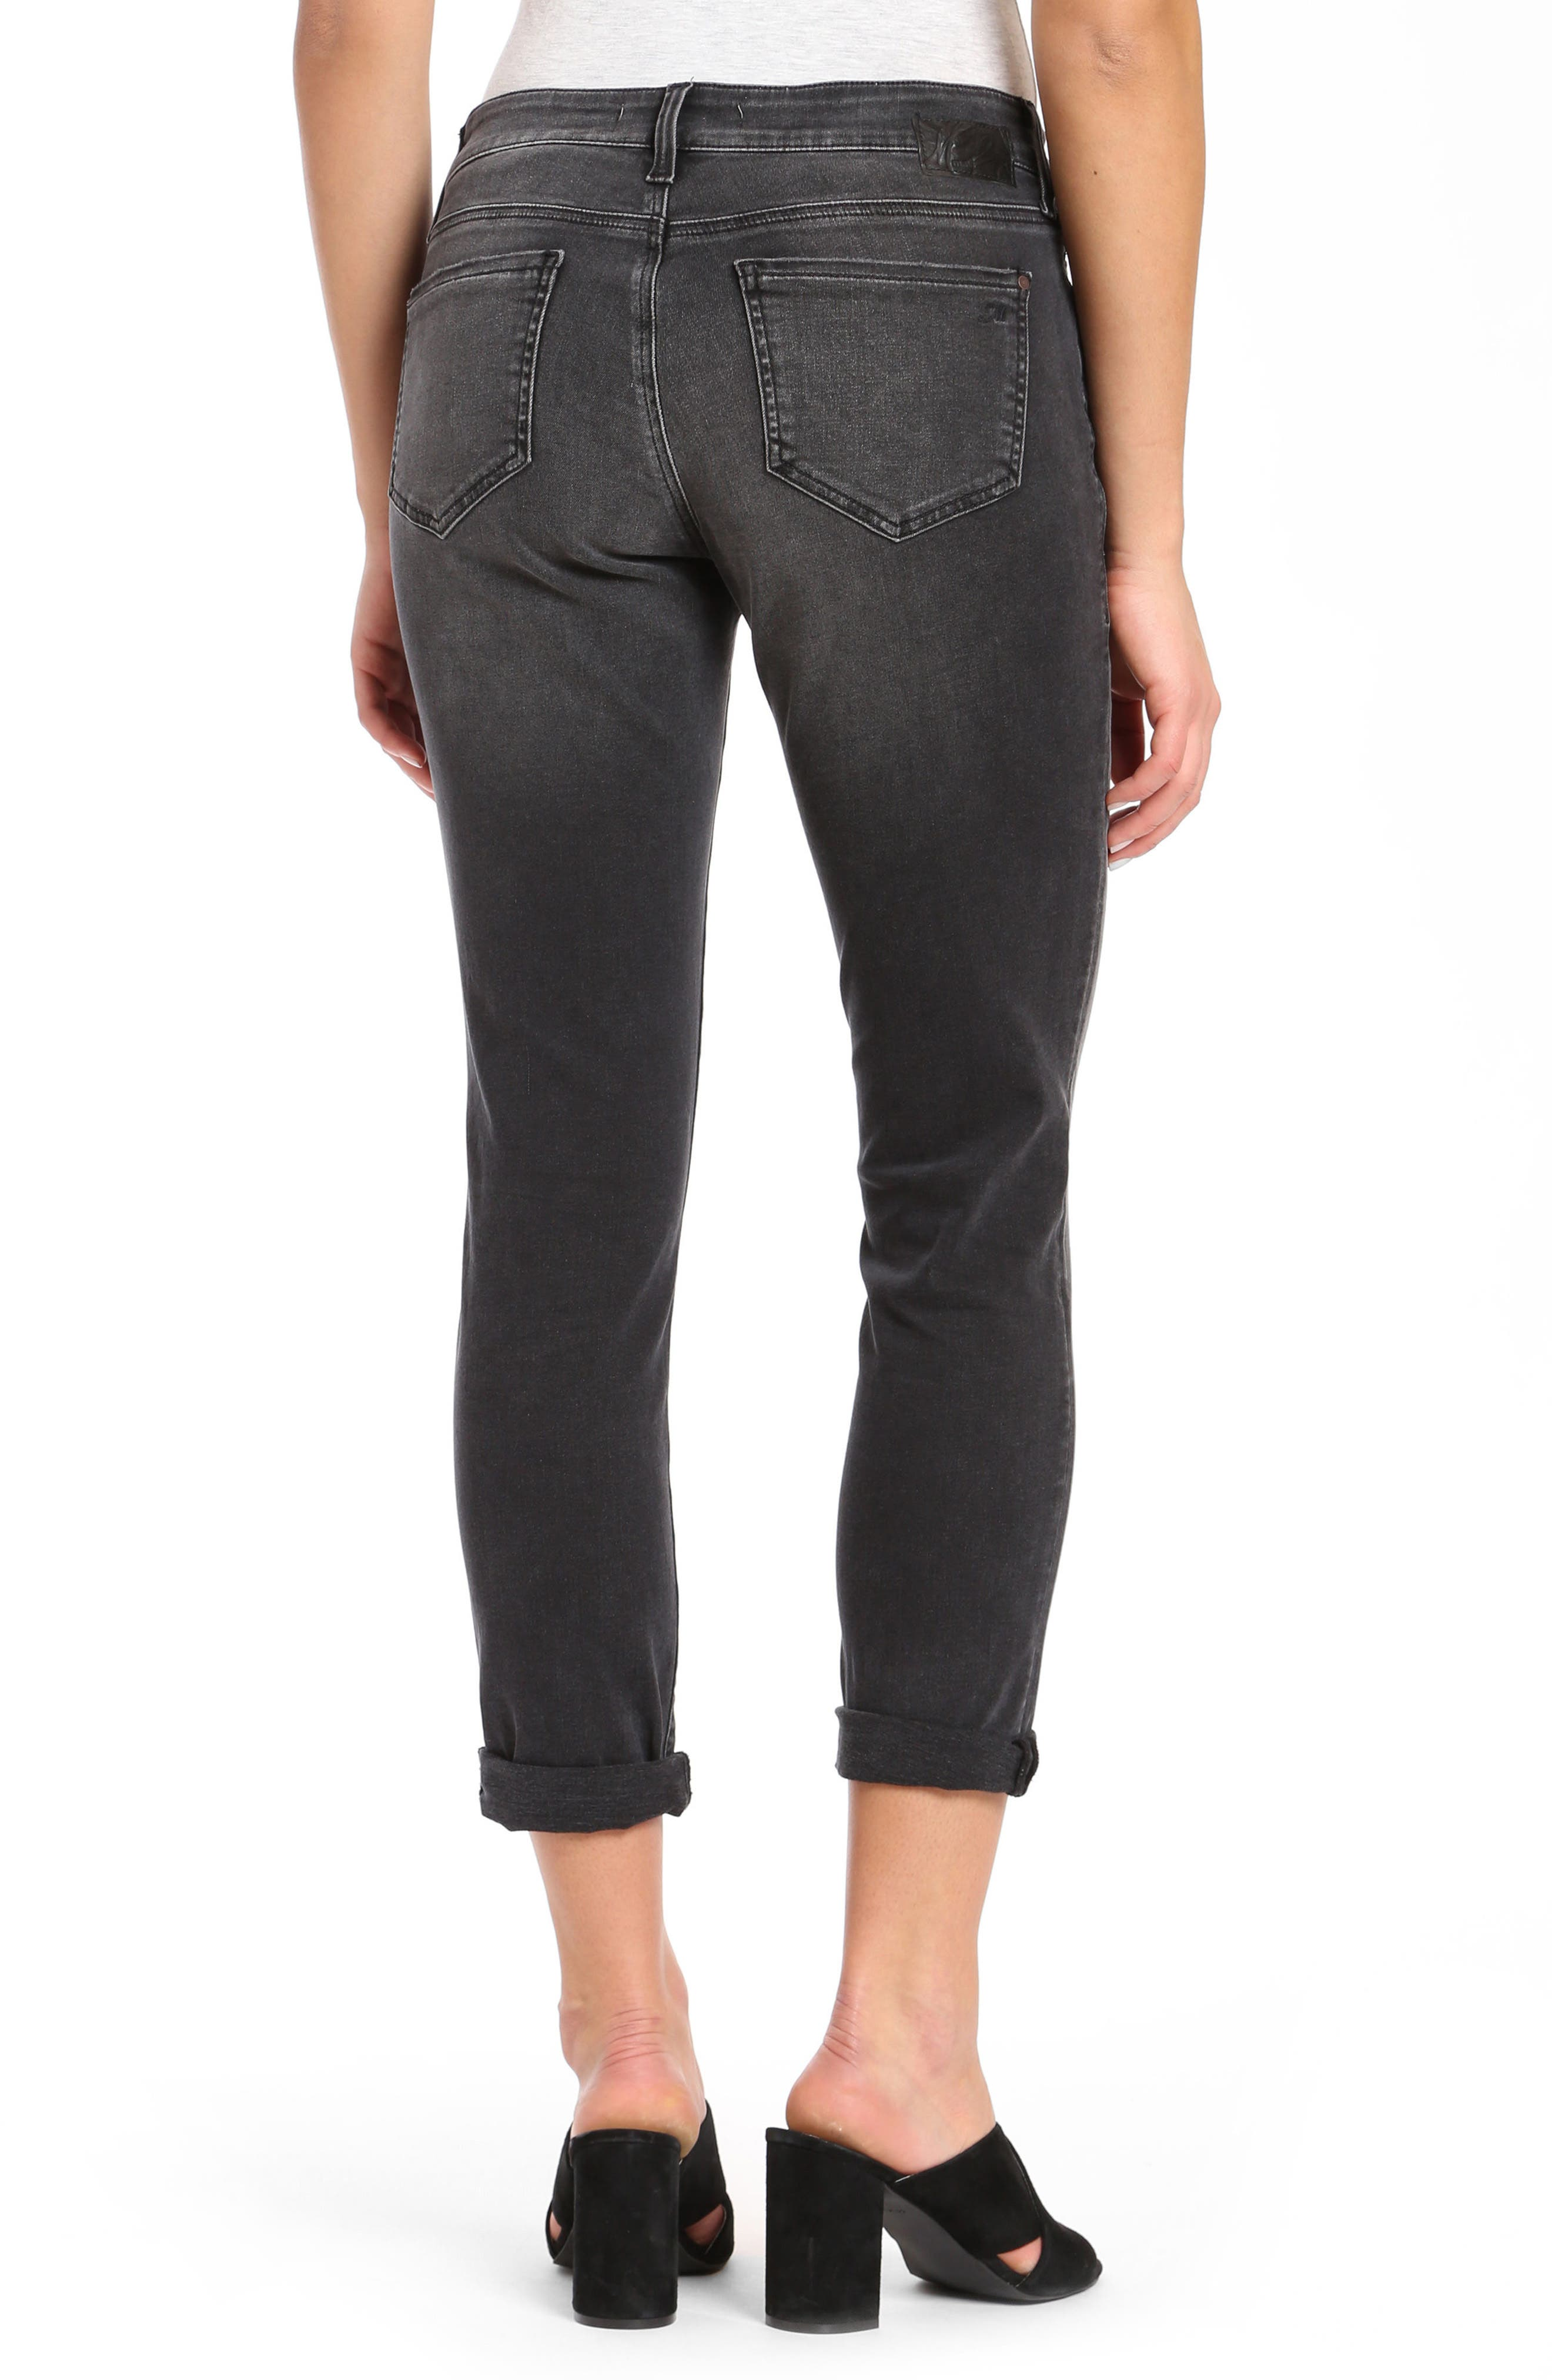 Alissa Super Skinny Ankle Jeans,                             Alternate thumbnail 3, color,                             Smoke Ripped Nolita